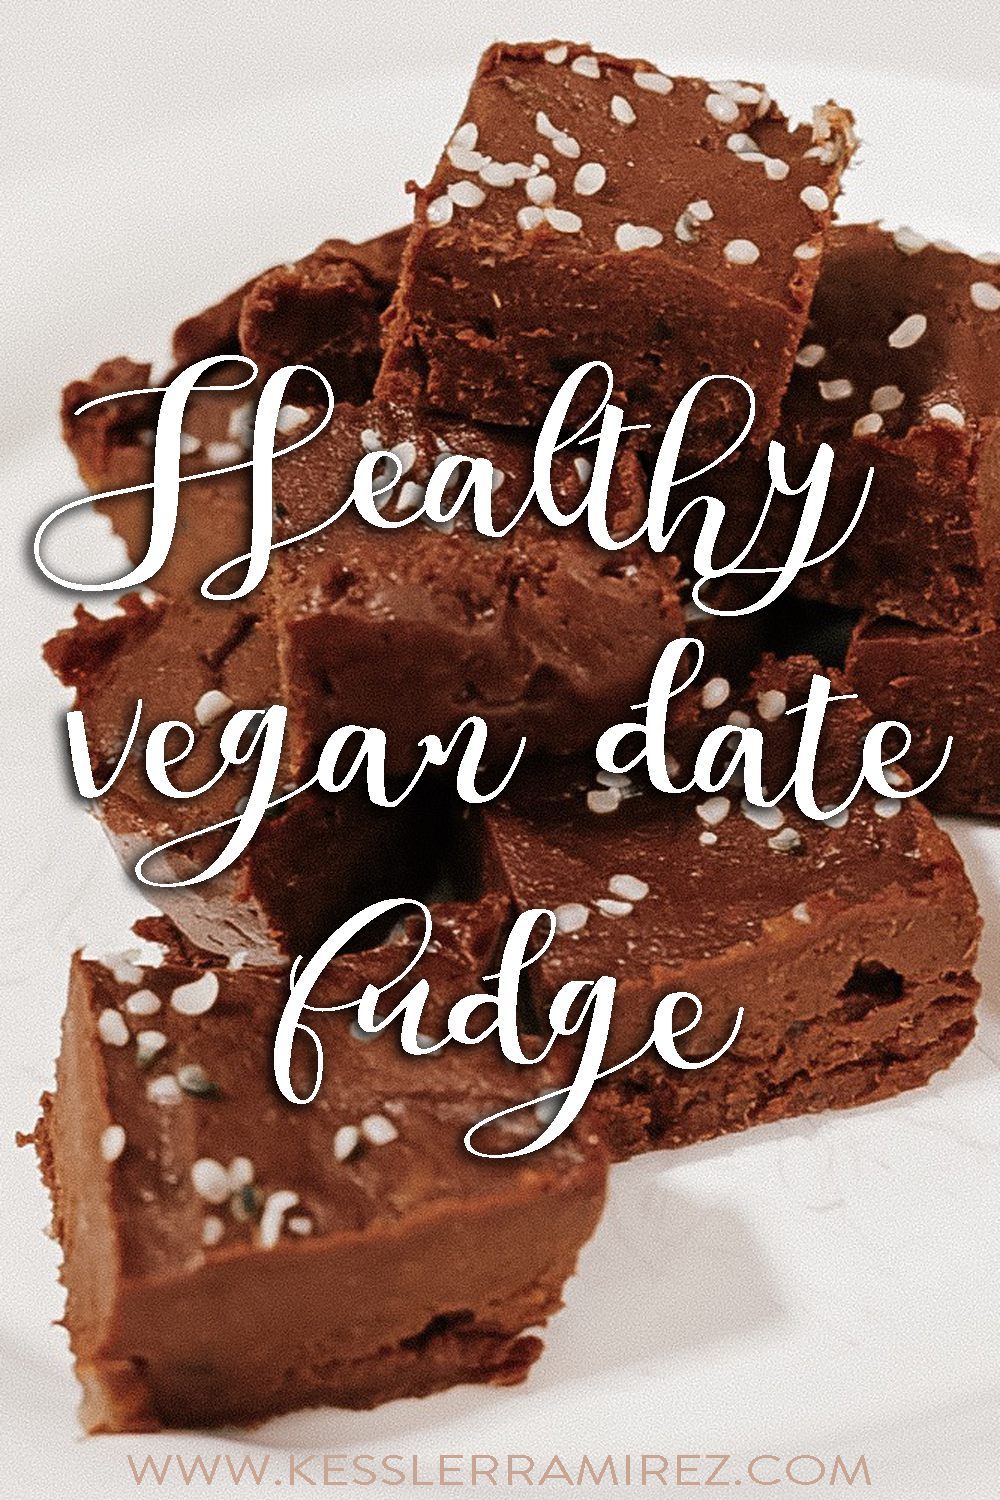 Healthy vegan date fudge – Kessler Ramirez